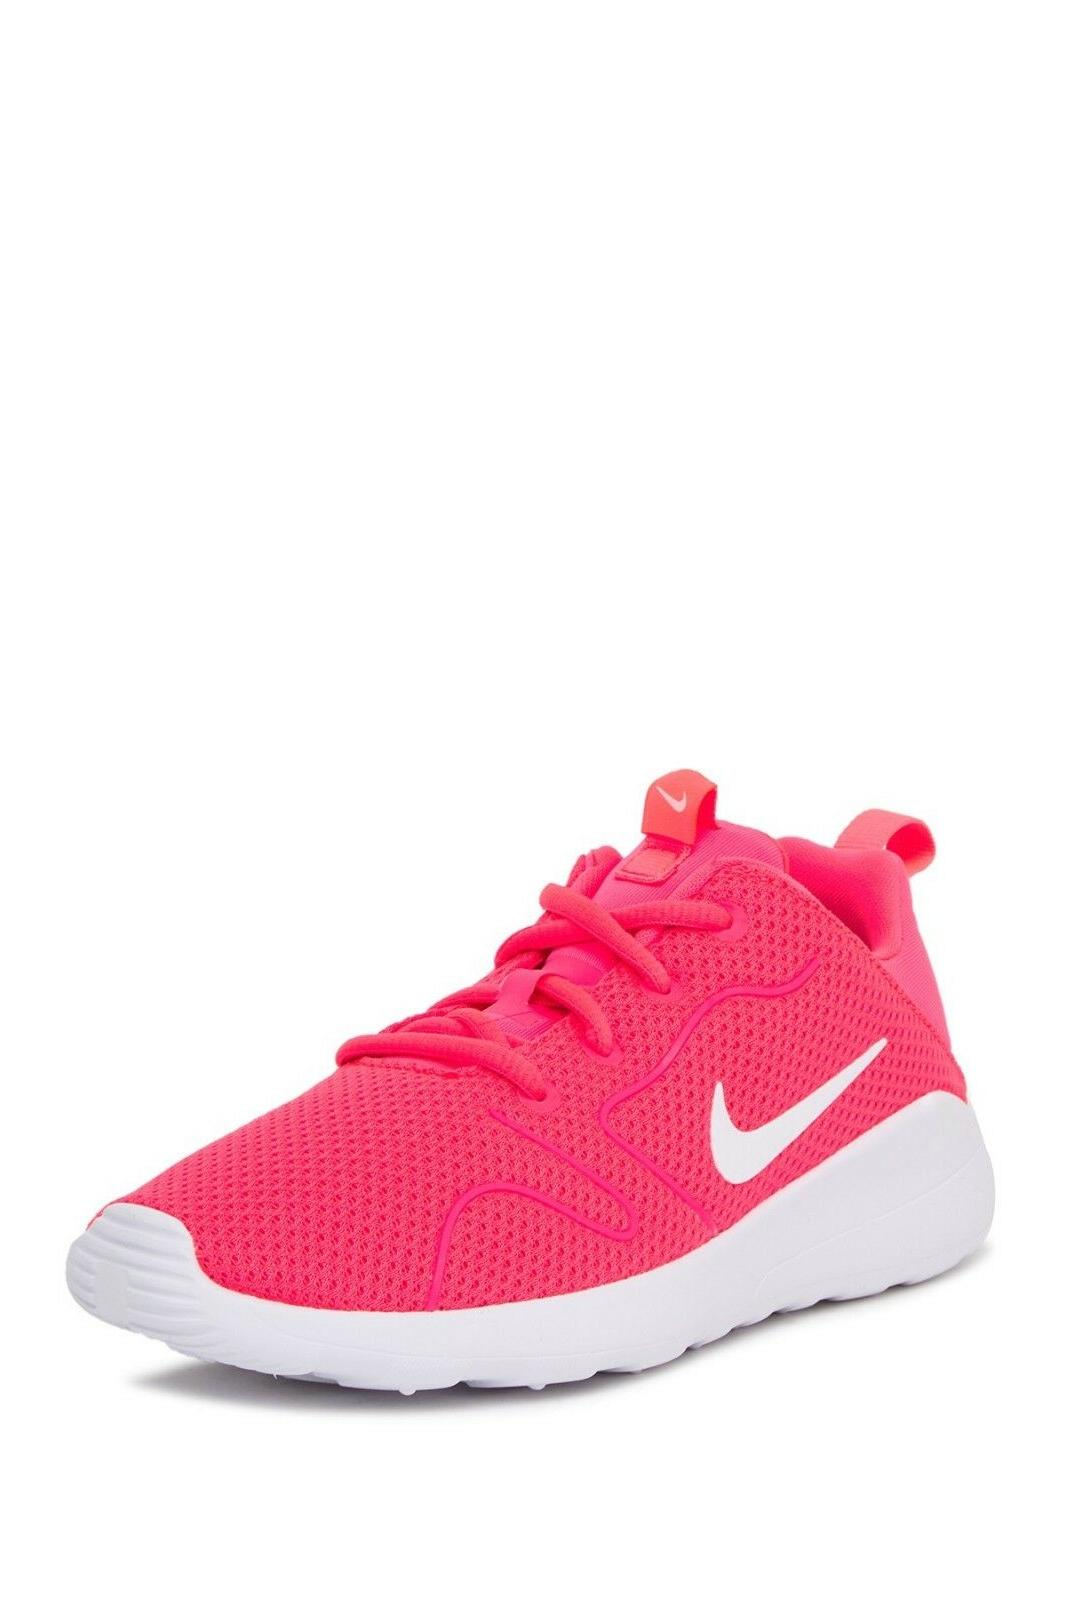 new girls kaishi sneakers shoes pink 844671